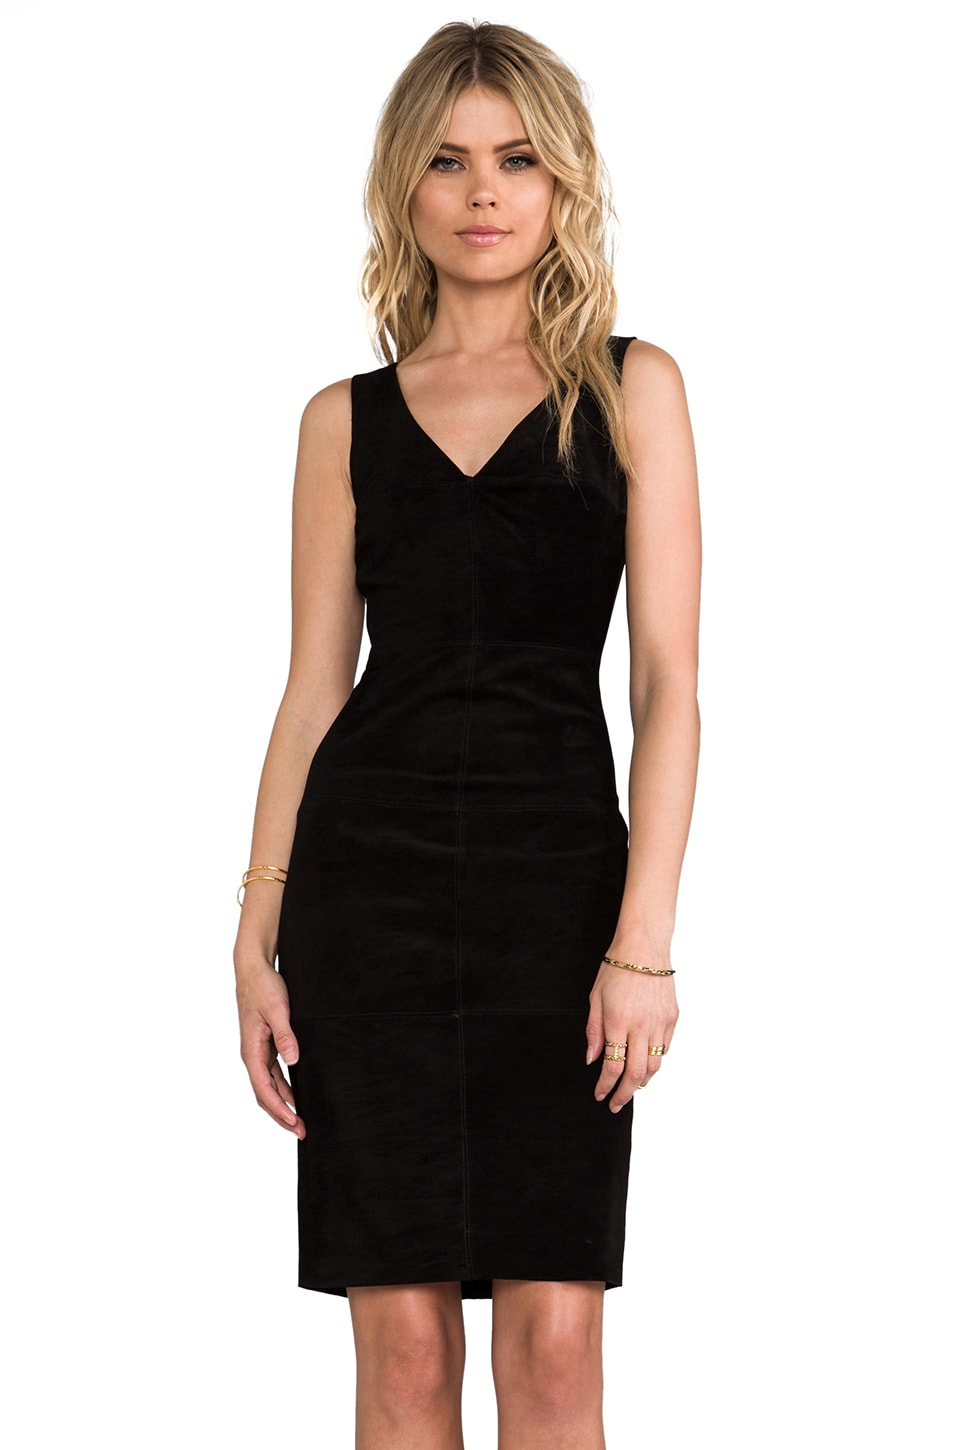 Bailey 44 Chick Flick Dress in Black